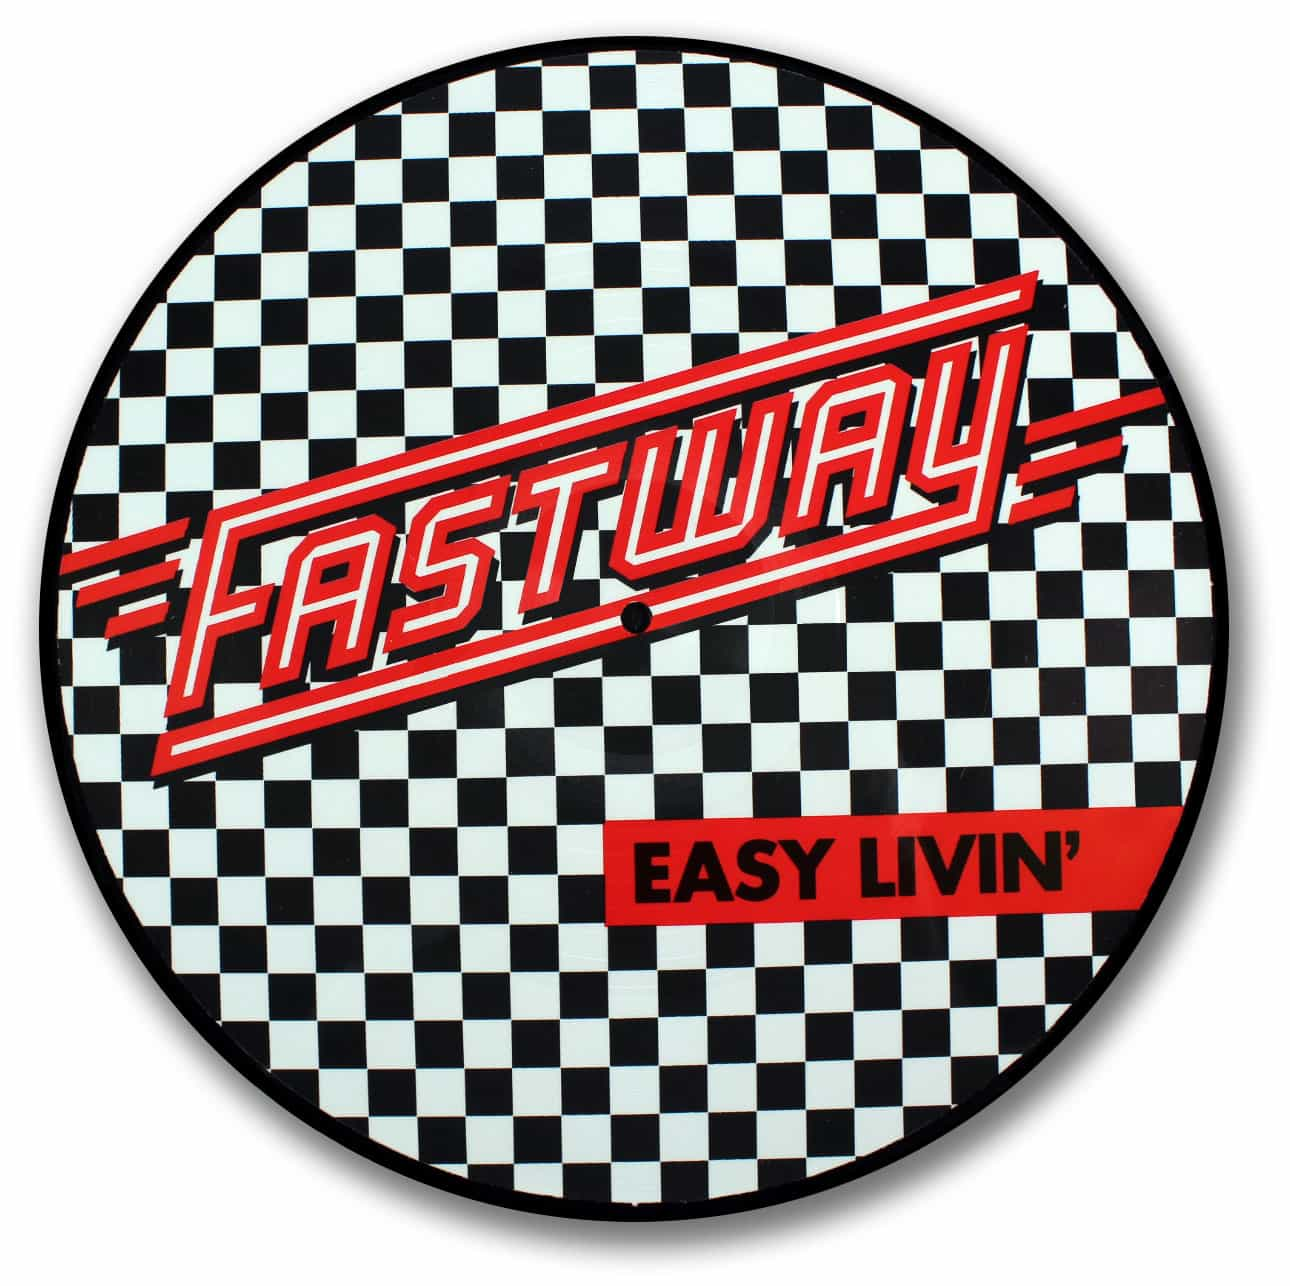 Fastway, Easy Livin' Picture Disc